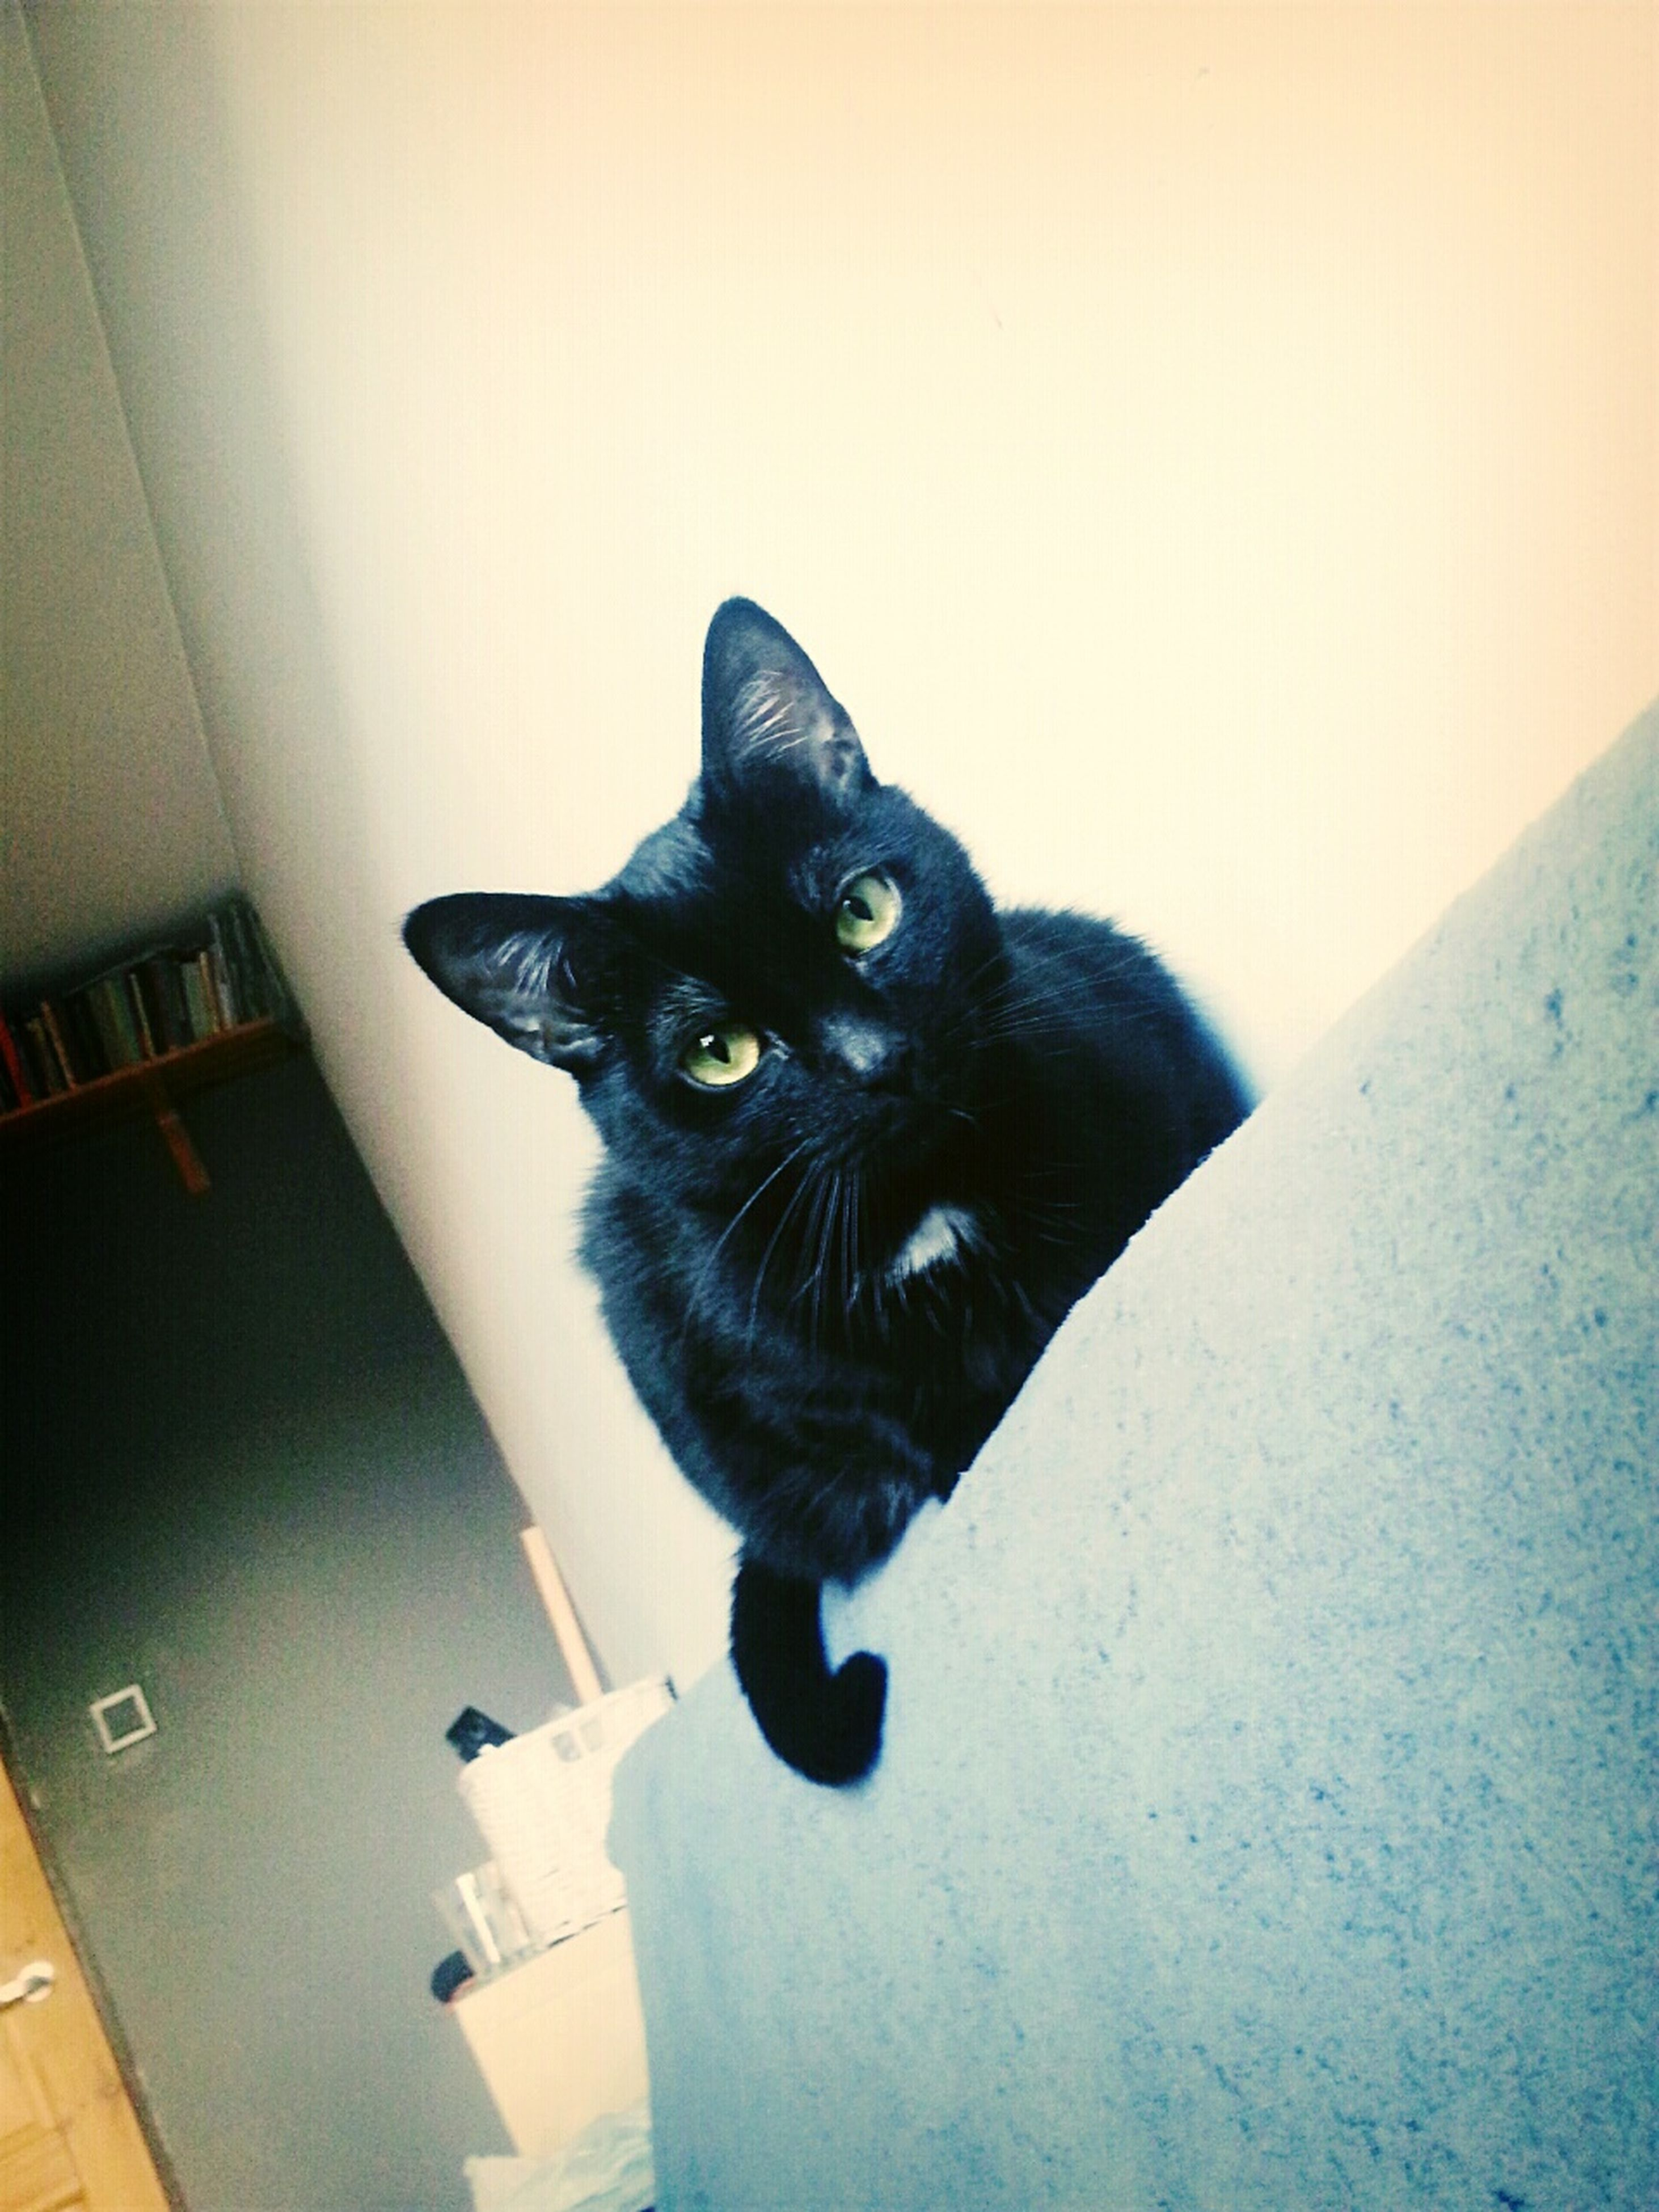 pets, one animal, domestic animals, animal themes, domestic cat, mammal, cat, looking at camera, portrait, indoors, feline, black color, sitting, staring, alertness, whisker, wall - building feature, no people, full length